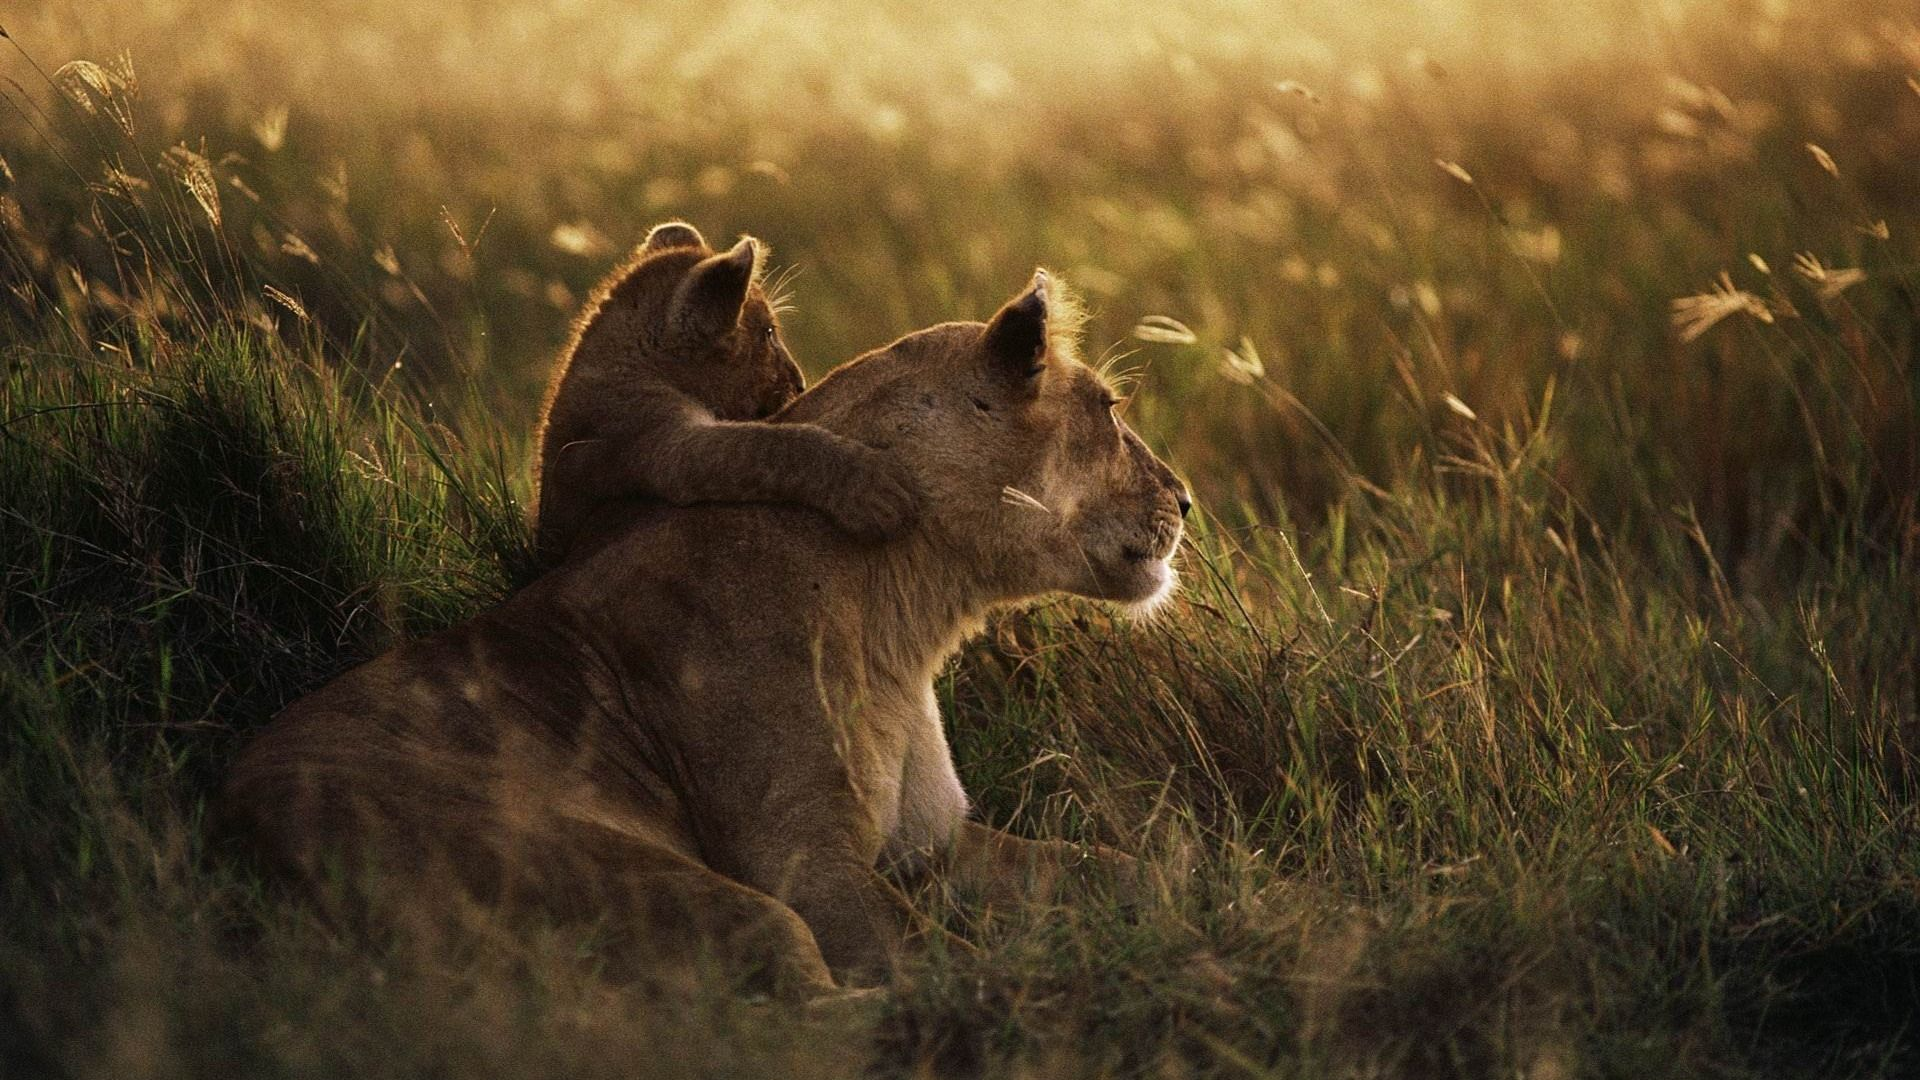 African Animals Wallpapers - Top Free African Animals Backgrounds ...